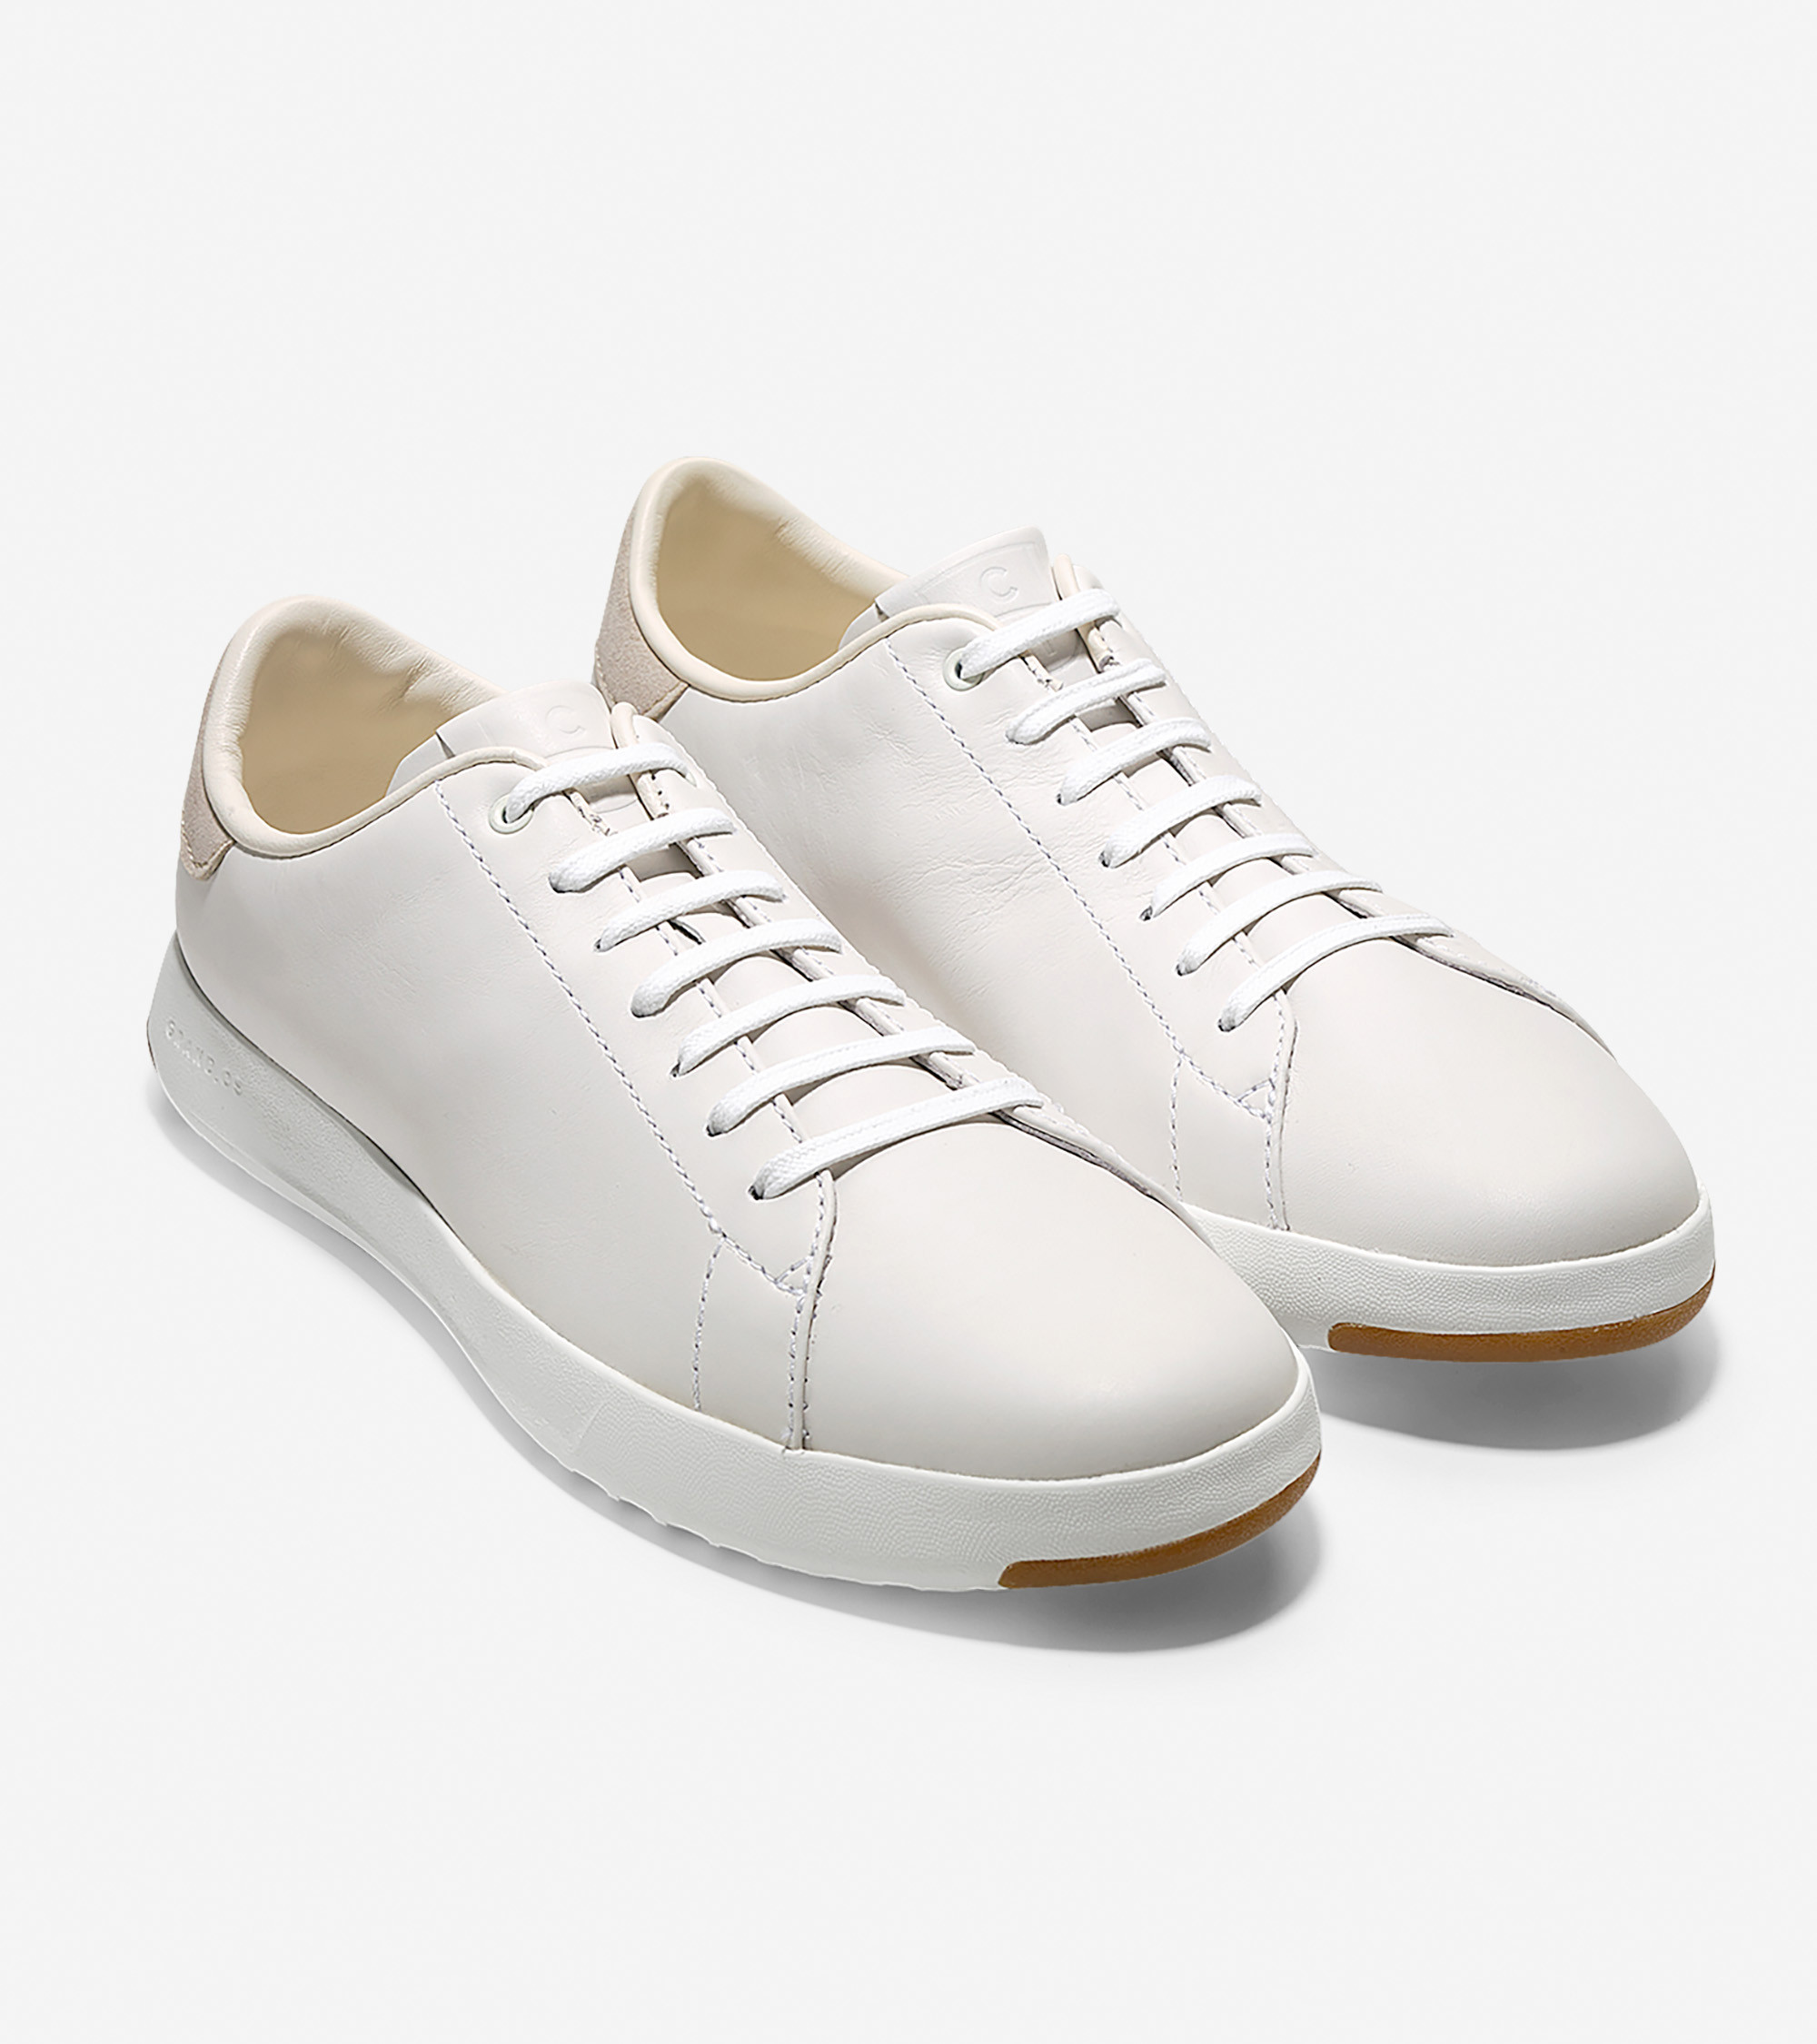 good reputation limited quantity luxury aesthetic Cole Haan GrandPrø Tennis Sneaker White